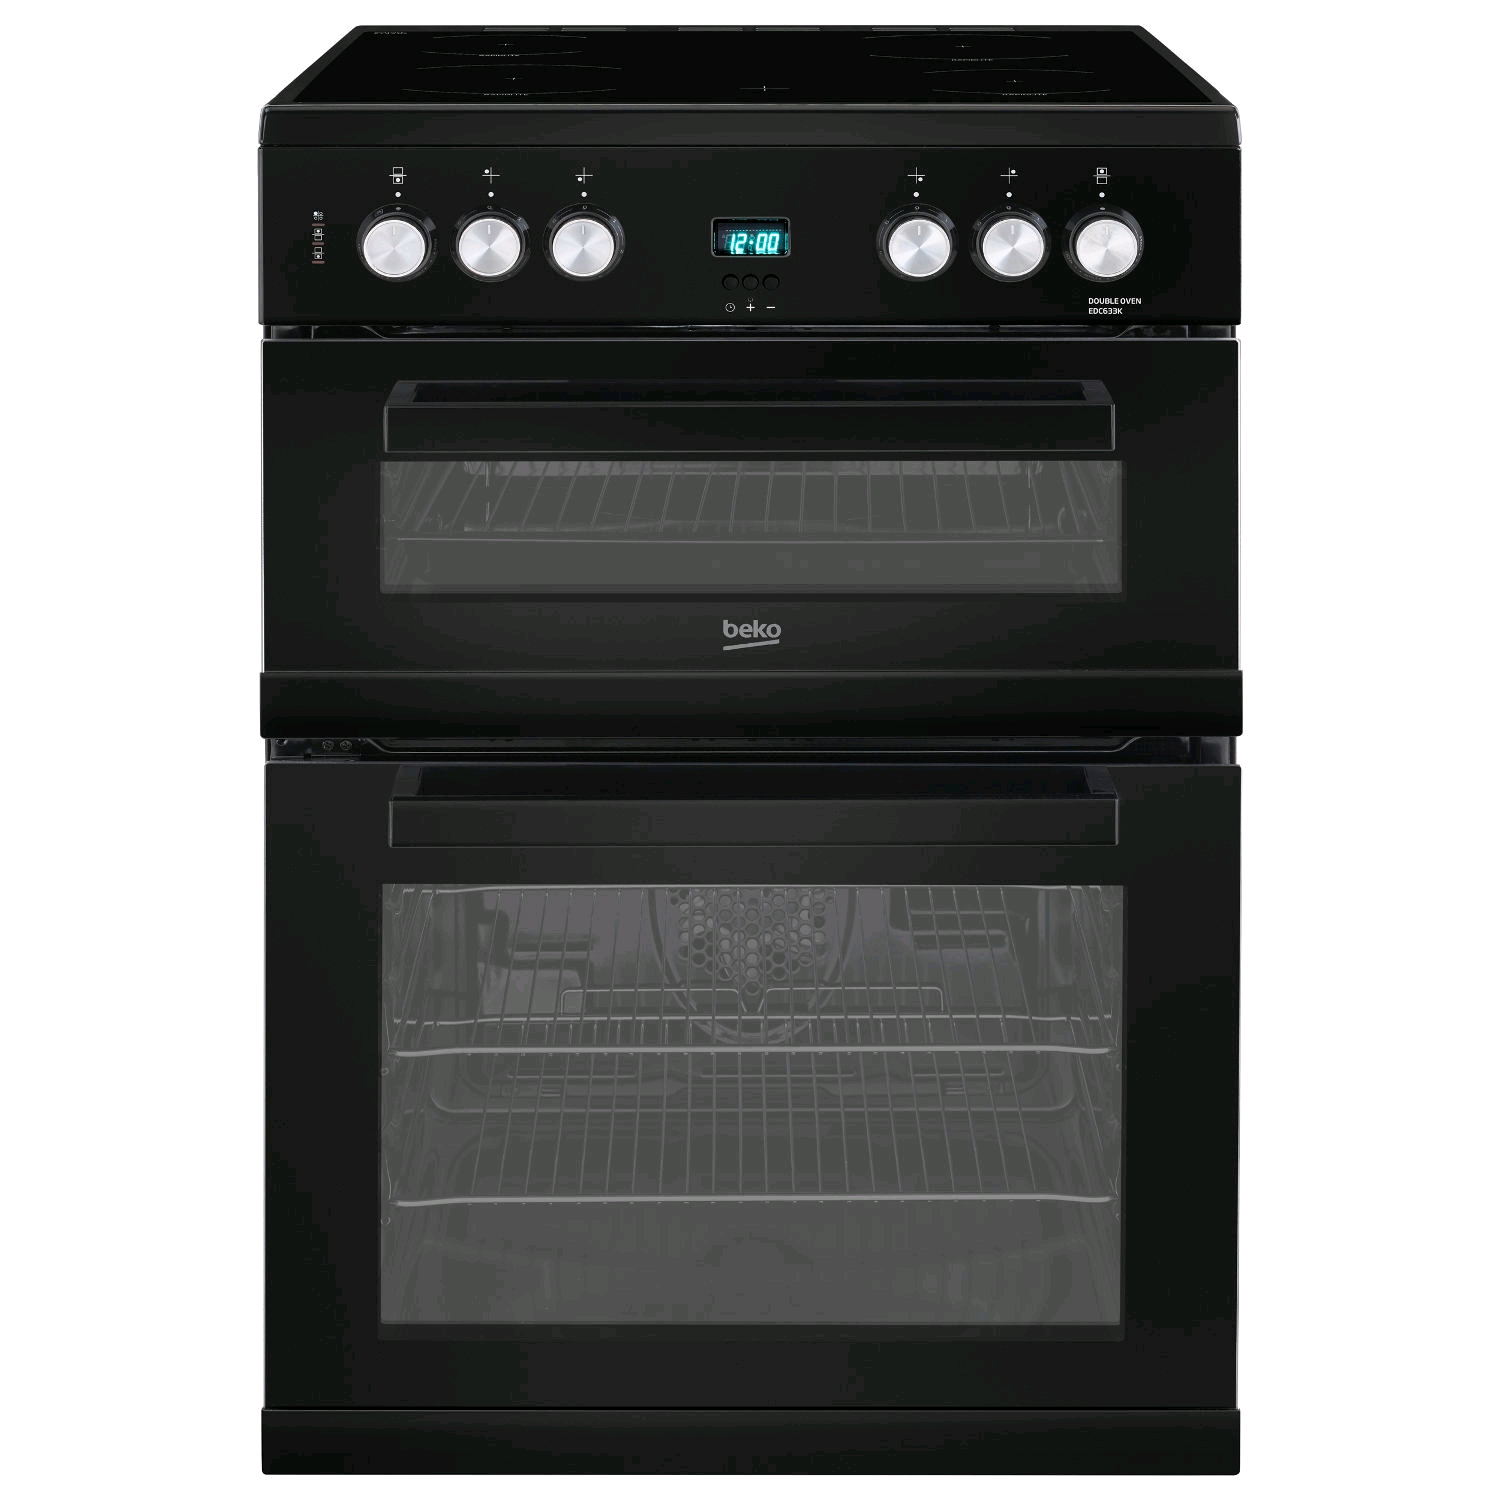 Beko Double Oven Electric Cooker Ceramic Hob 60cm in Black